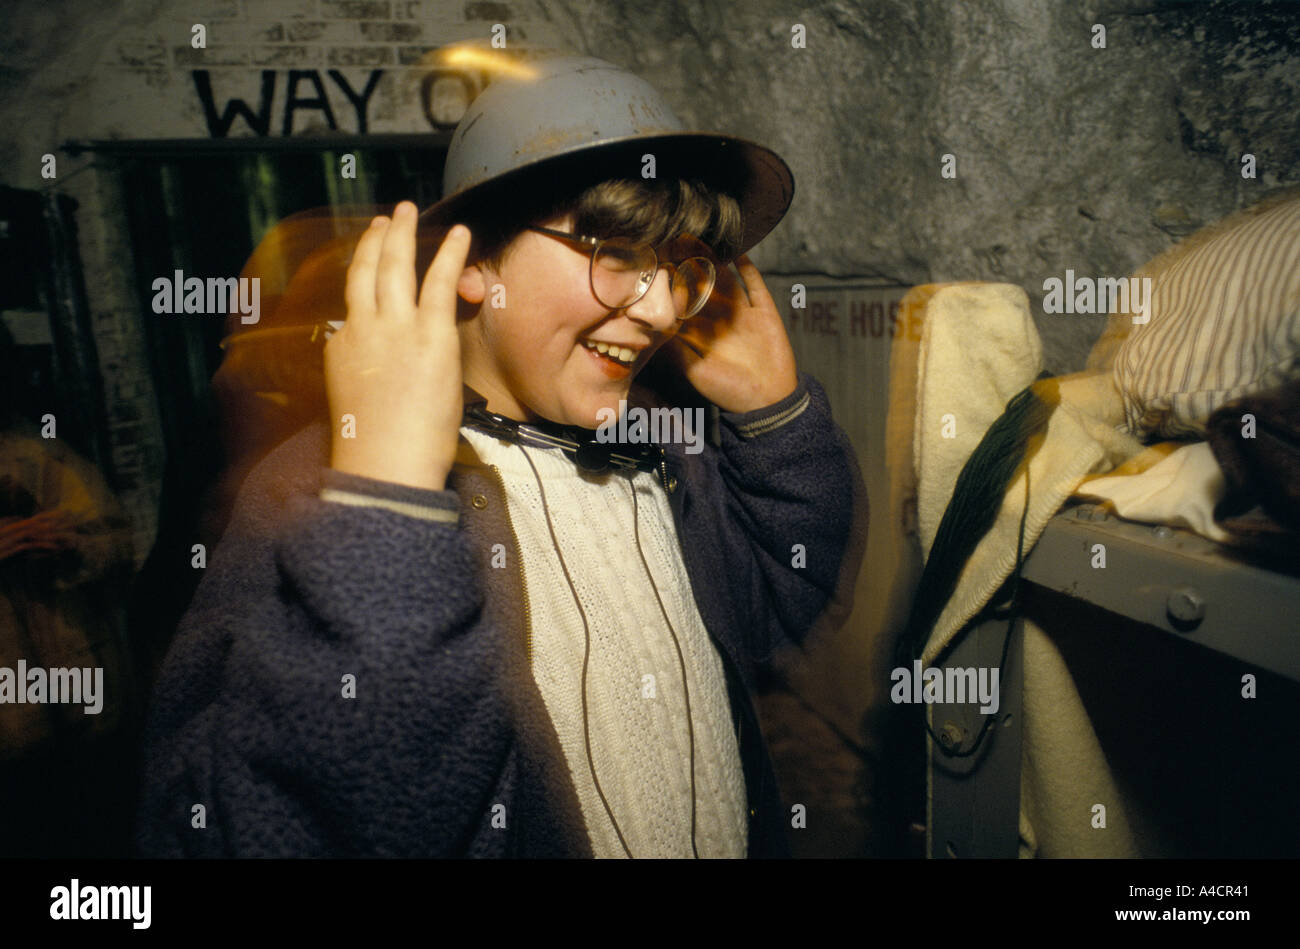 CHILD PUTTING ON A METAL HELMET WORN BY ANTI-AIRCRAFT GUNNER CREWS DEFENDING ENGLAND DURING THE SECOND WORLD WAR AT THE WHITE CL - Stock Image